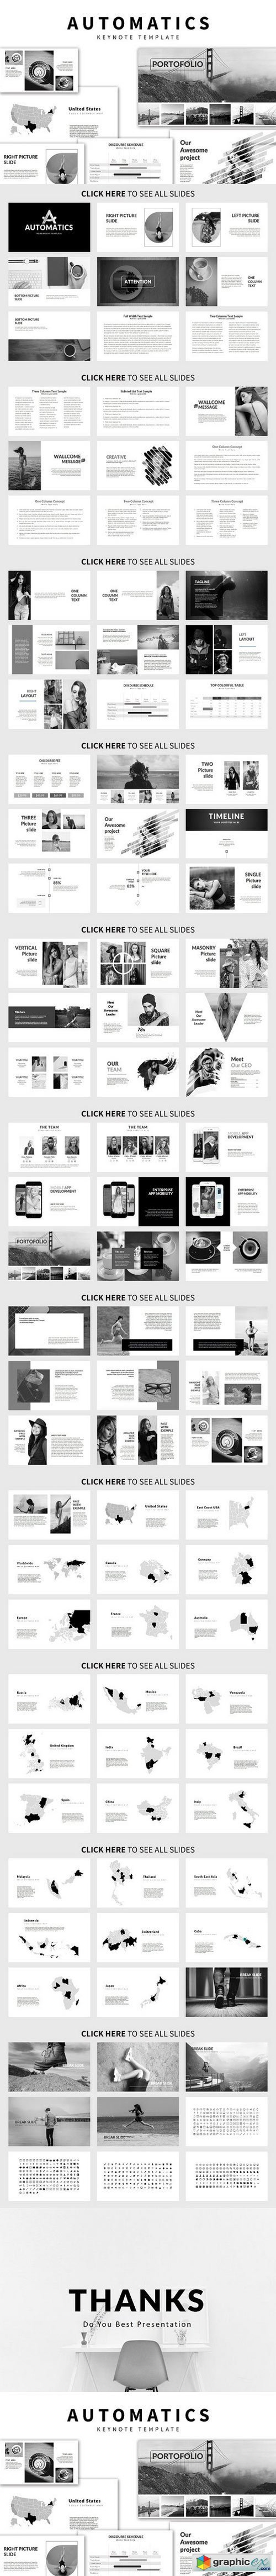 Automatics Keynote Template